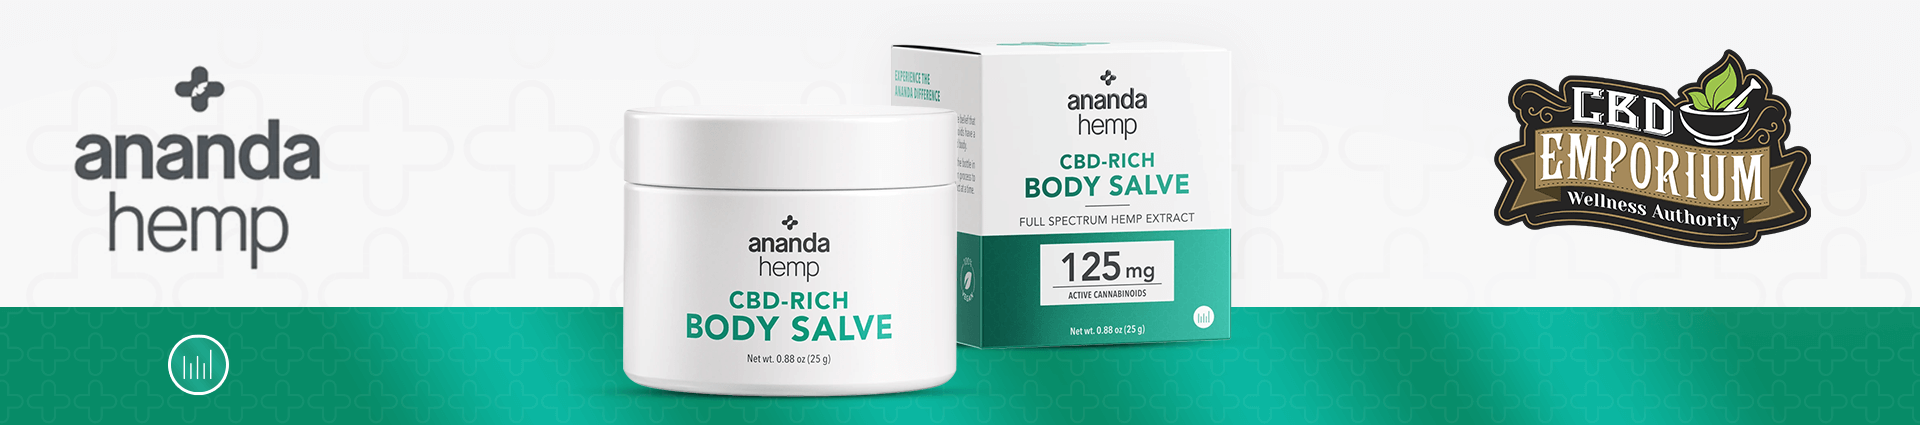 Ananda Hemp CBD Body Salve carried at CBD Emporium